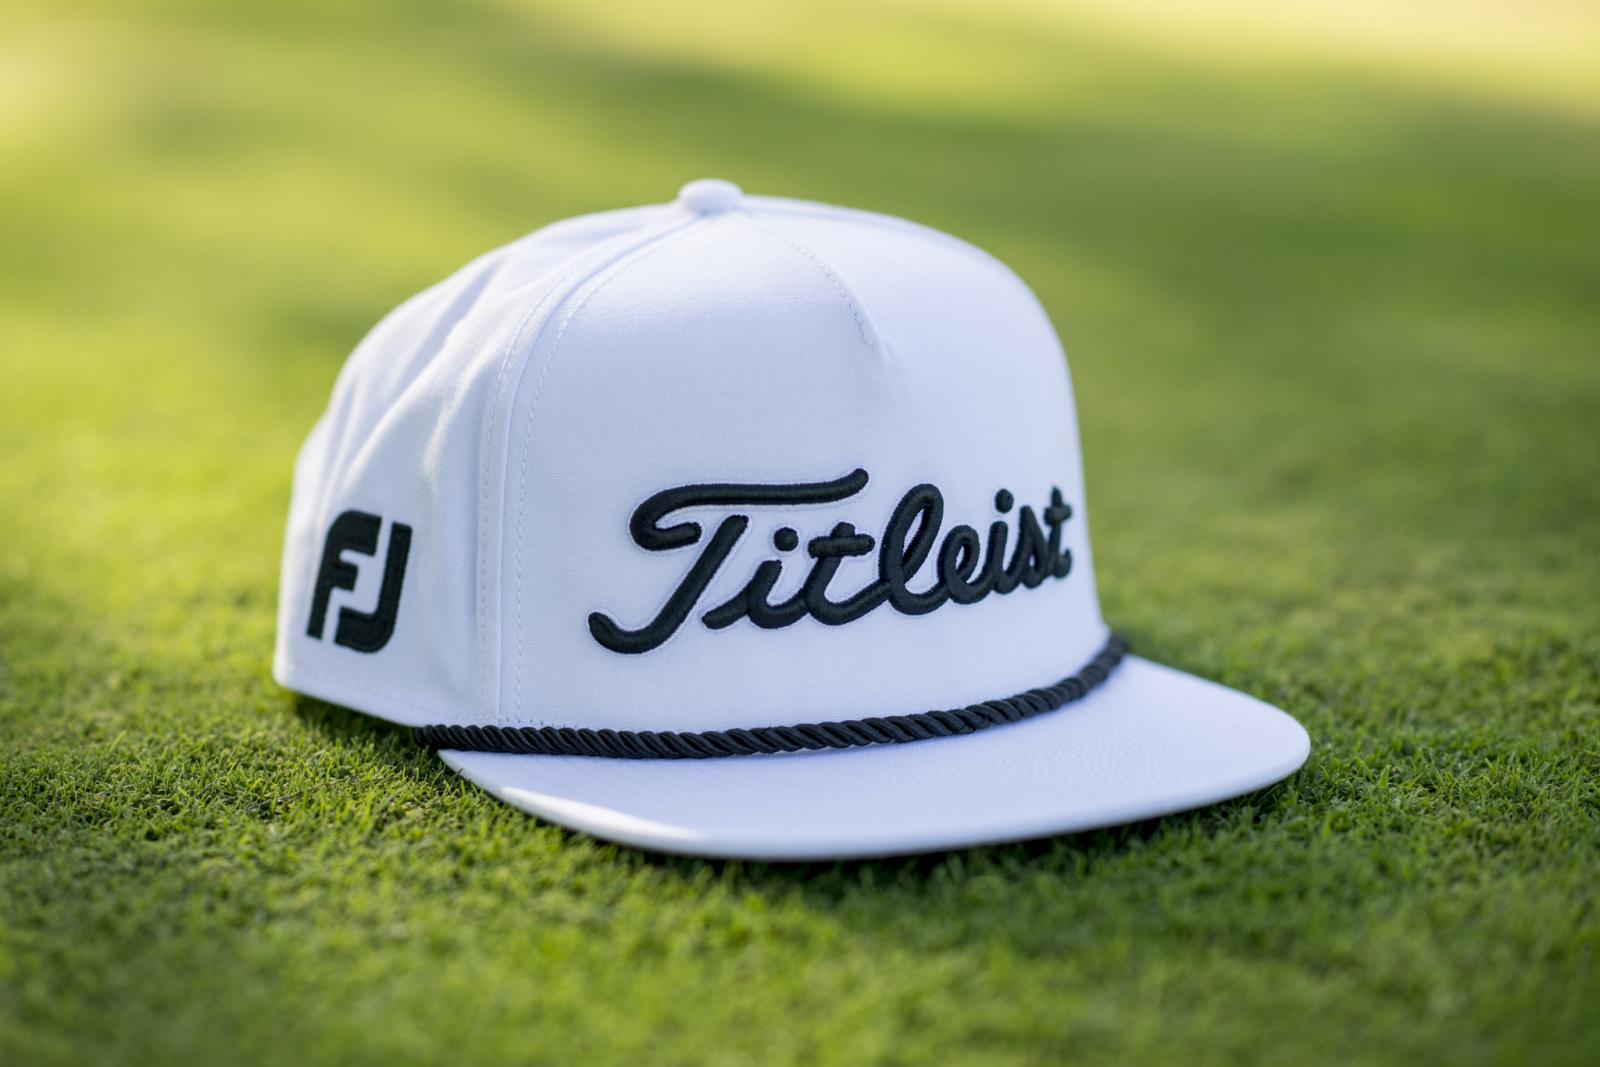 Titleist Introduces Titleist Tour Rope Flat Bill Hat Collection ... 0a0fe10b4e9